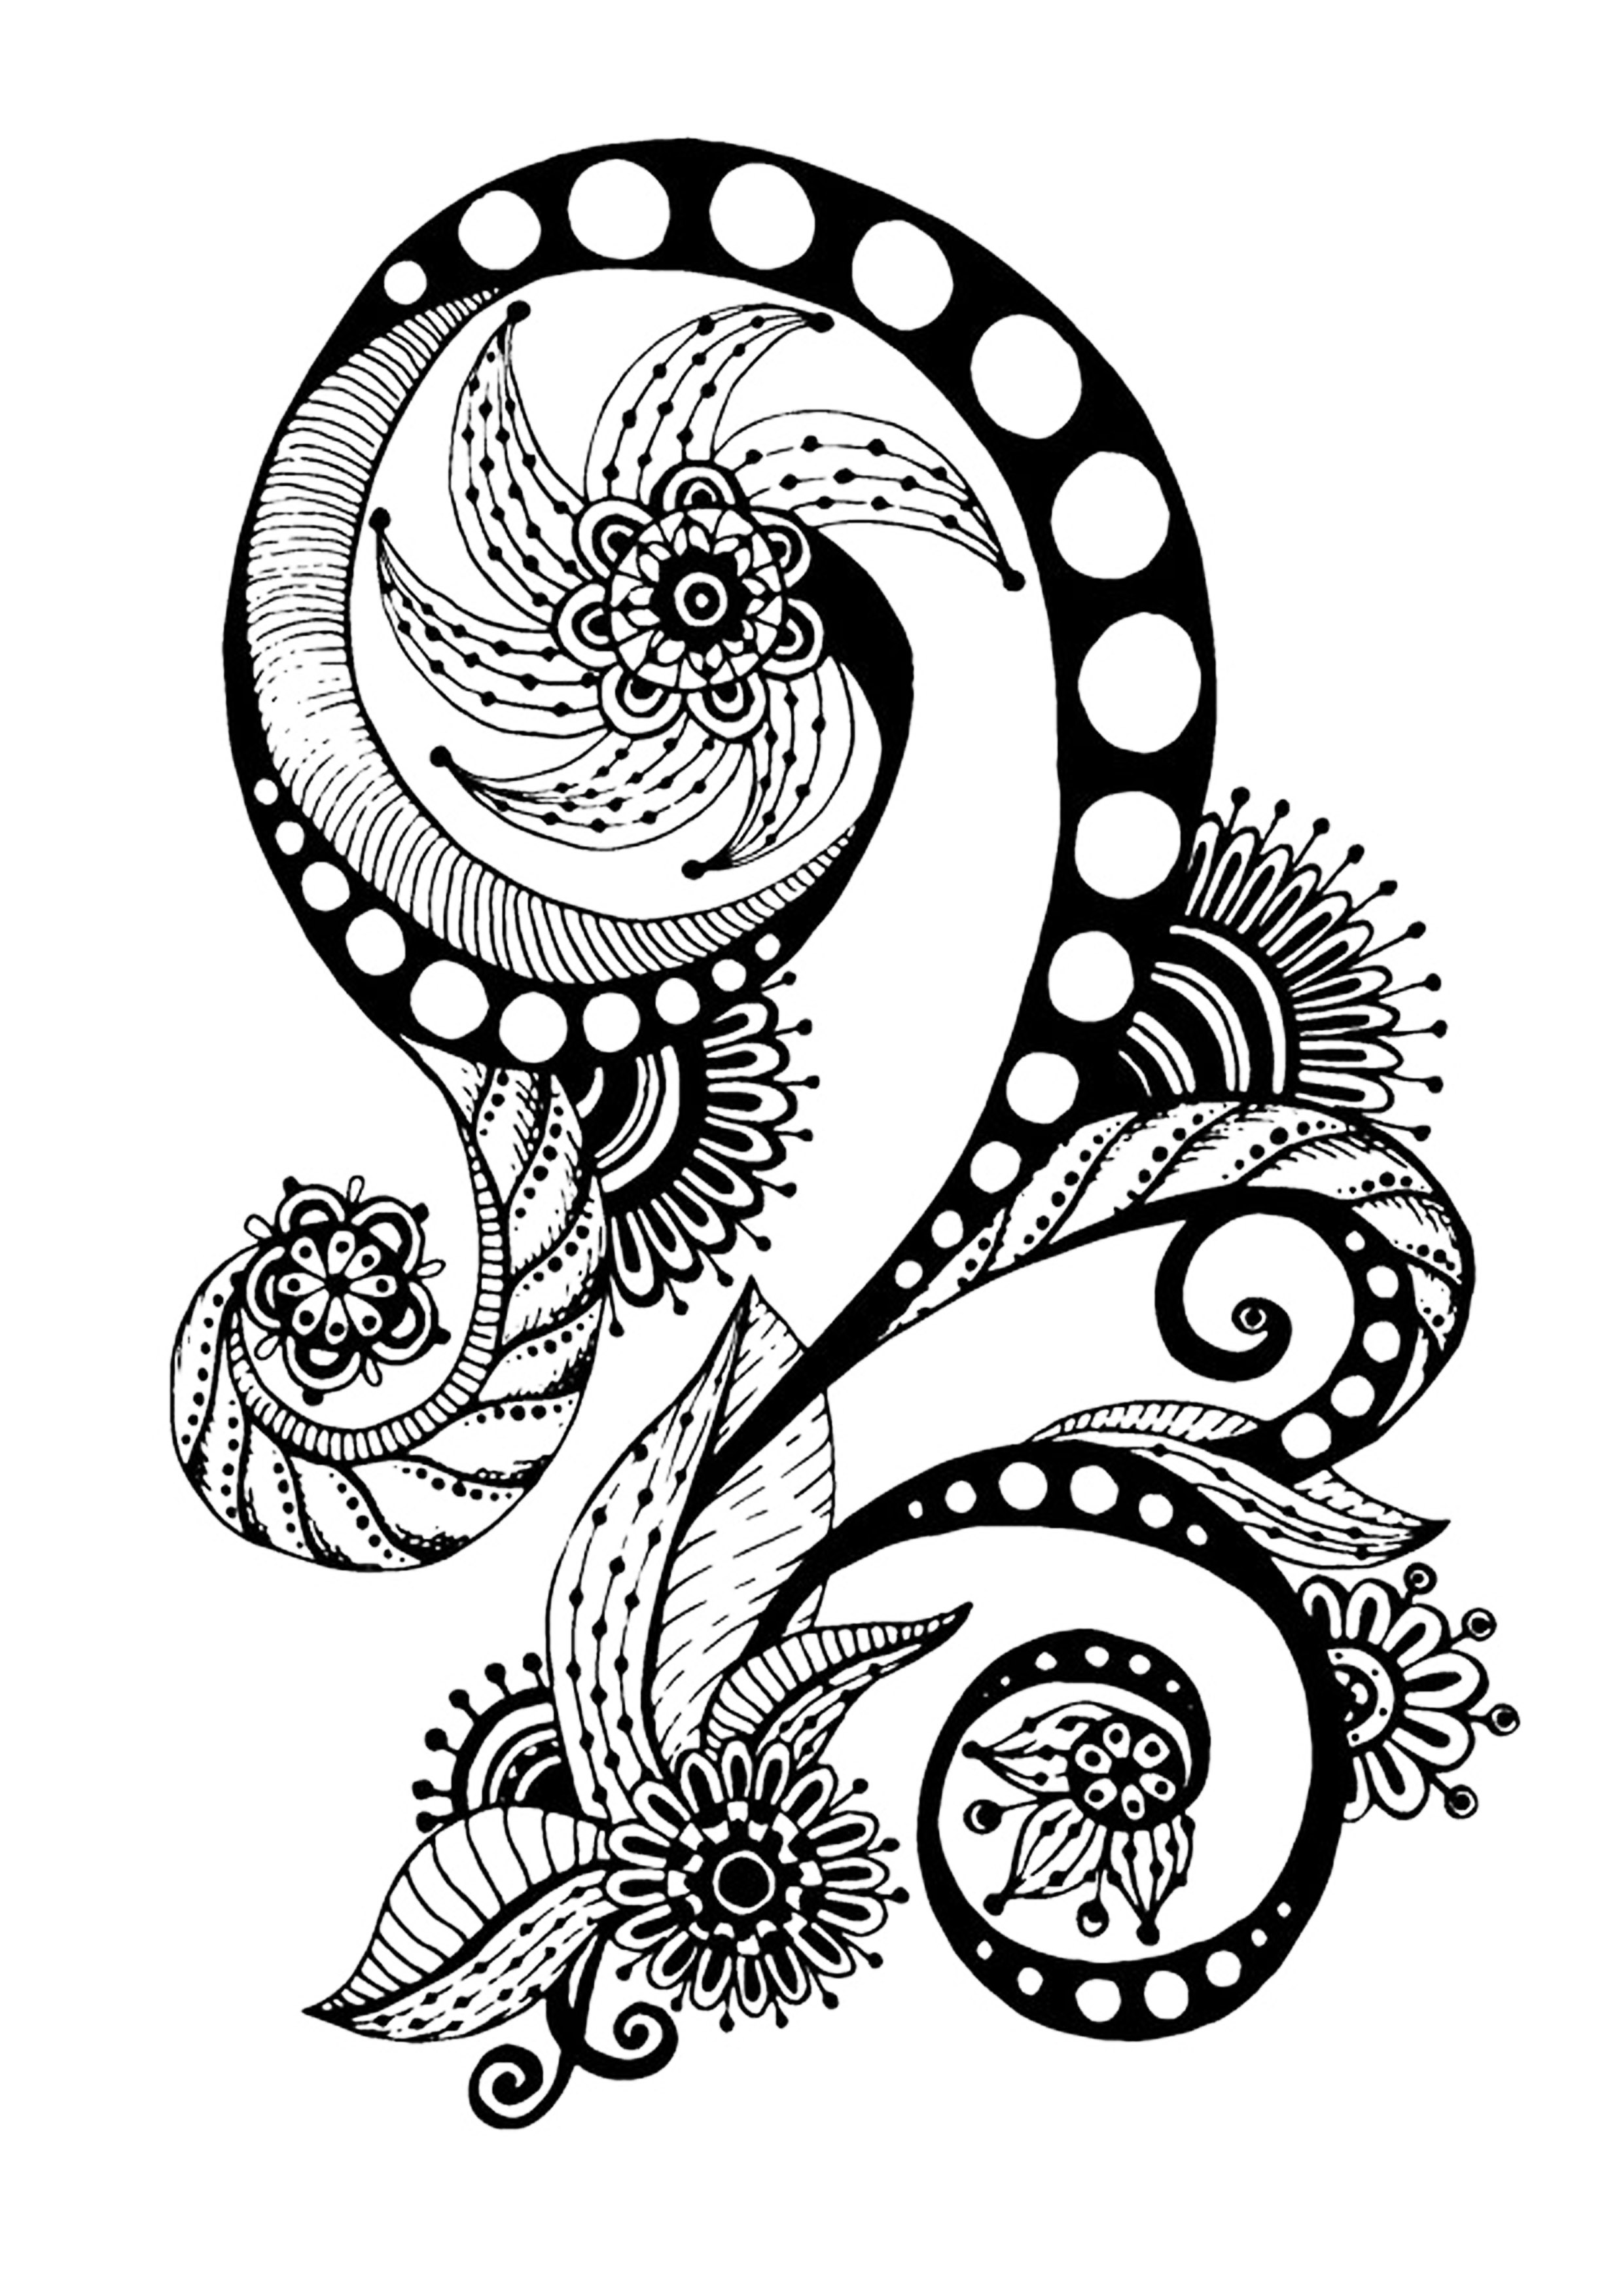 free zen coloring pages free coloring page coloring zen antistress abstract free pages coloring zen